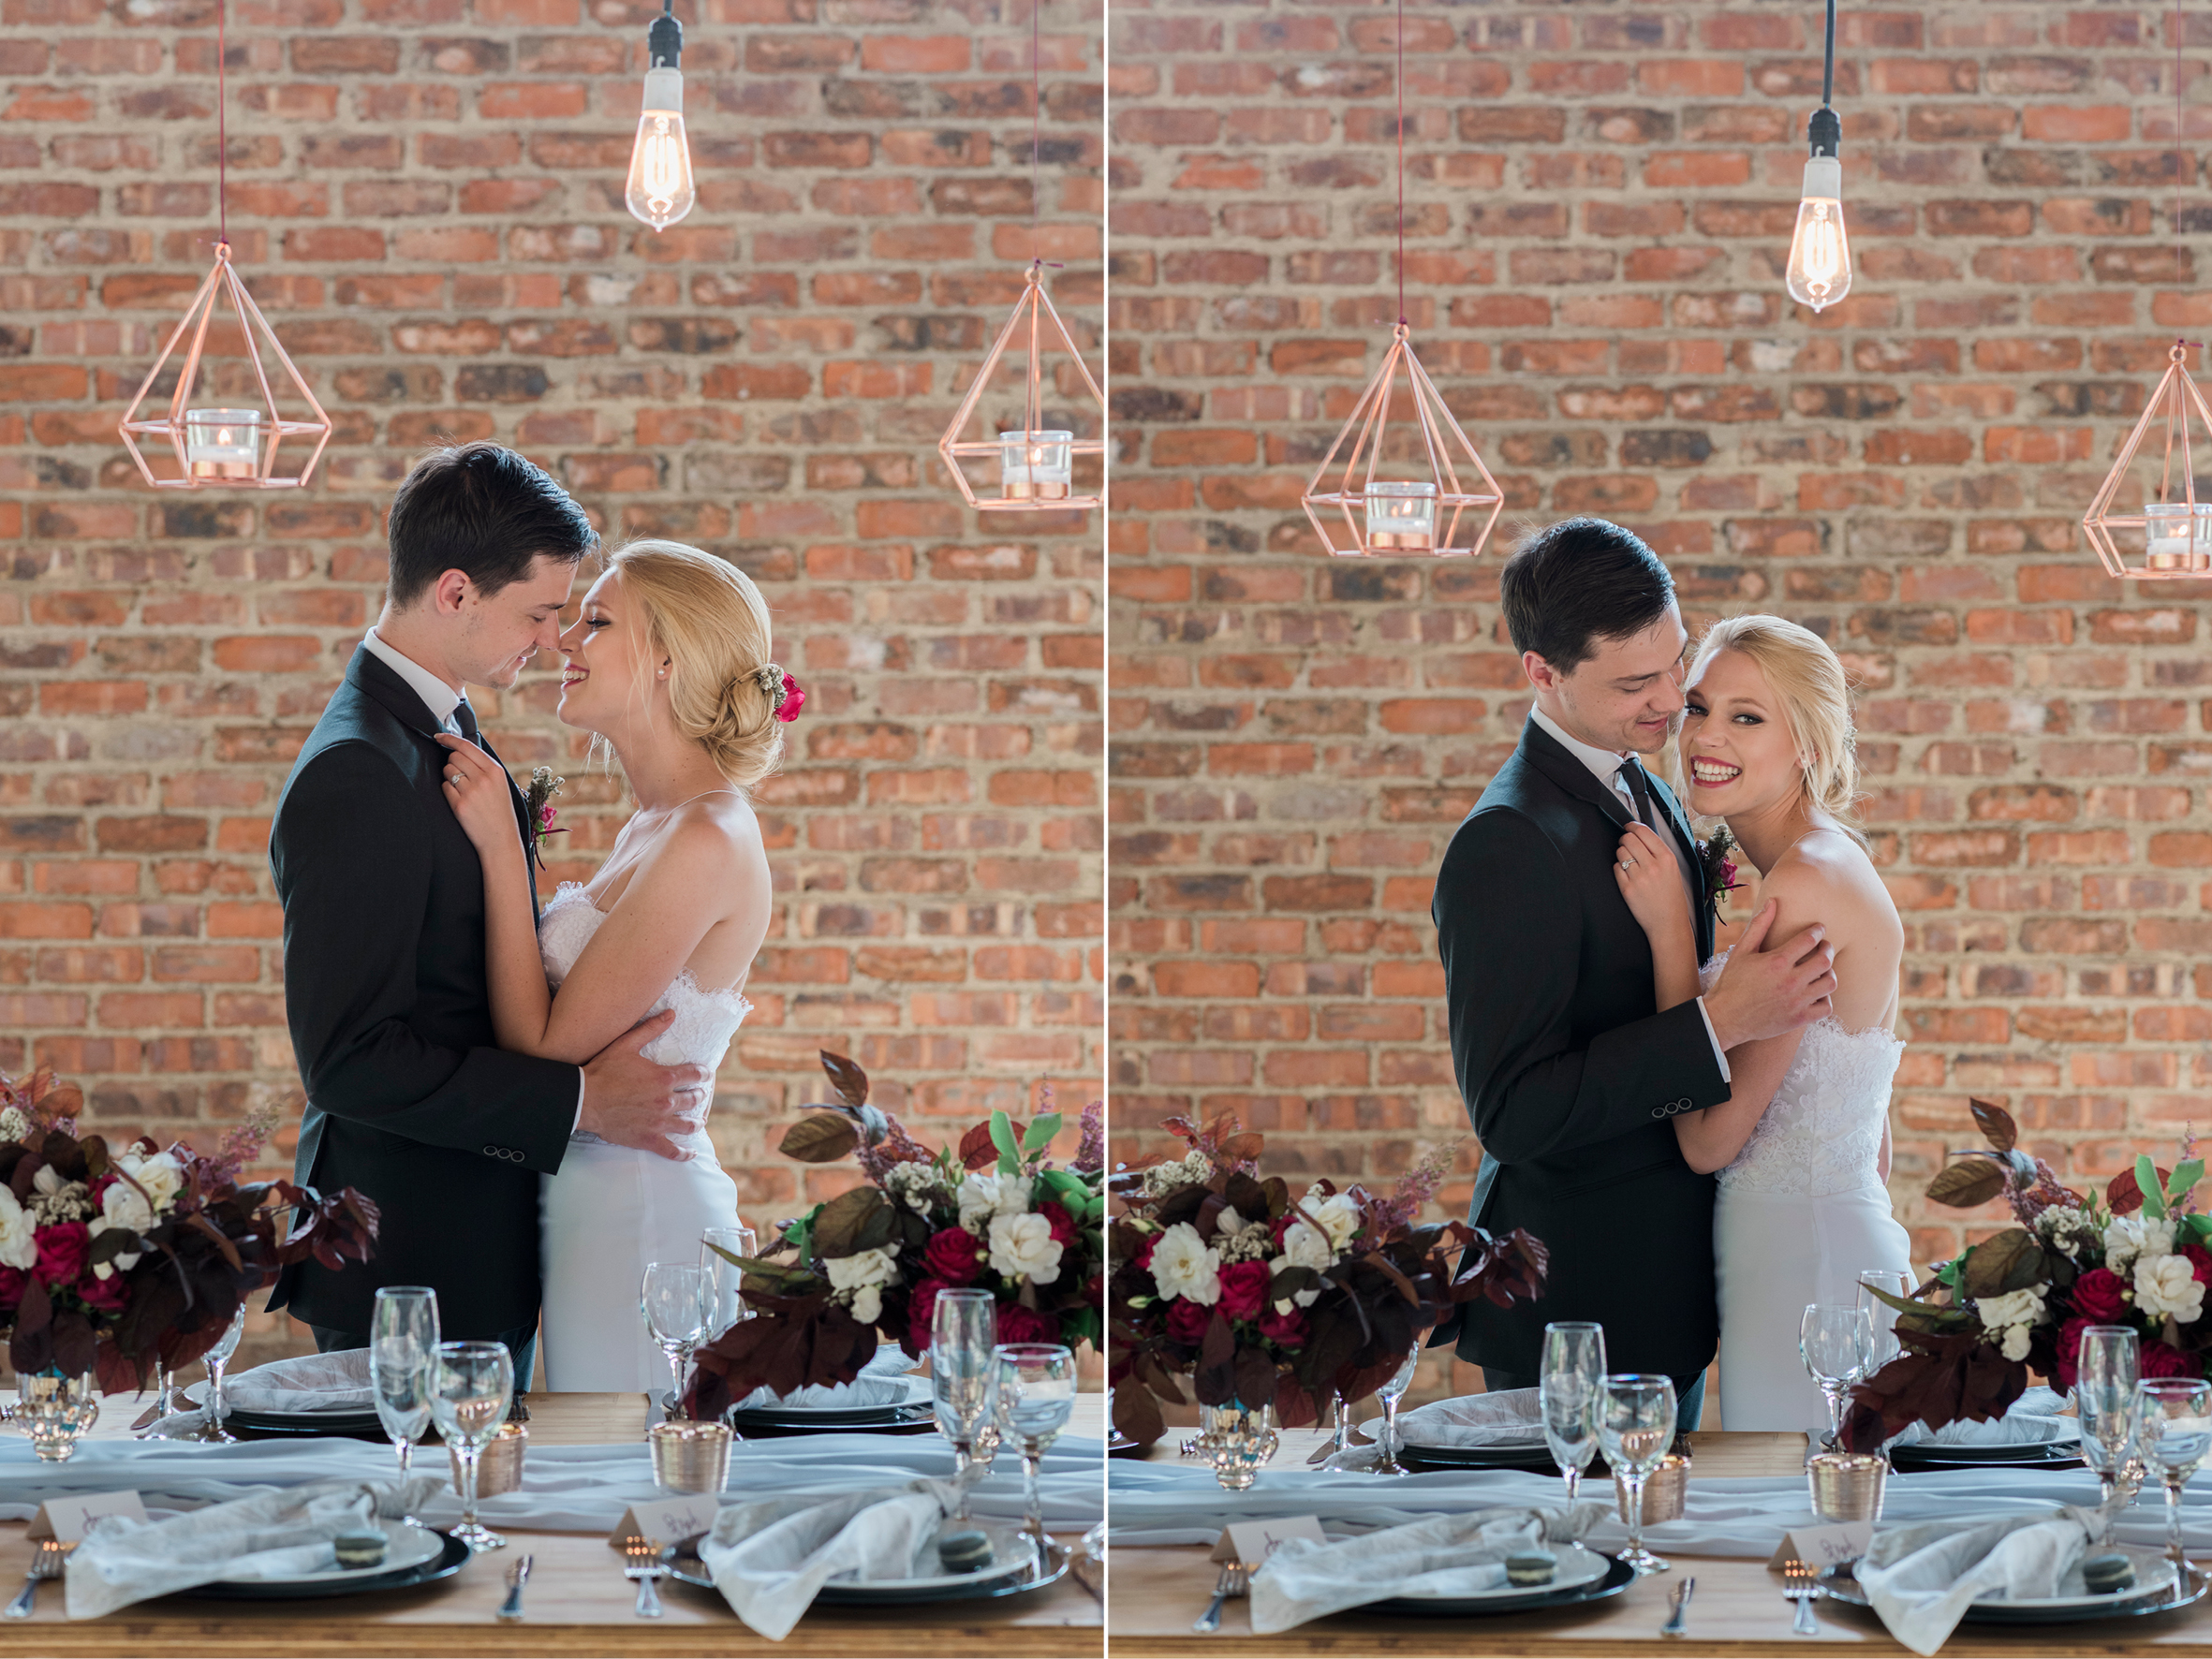 BronwynAlyson_Wedding_Styled shoot Industrial Modernism_18.jpg